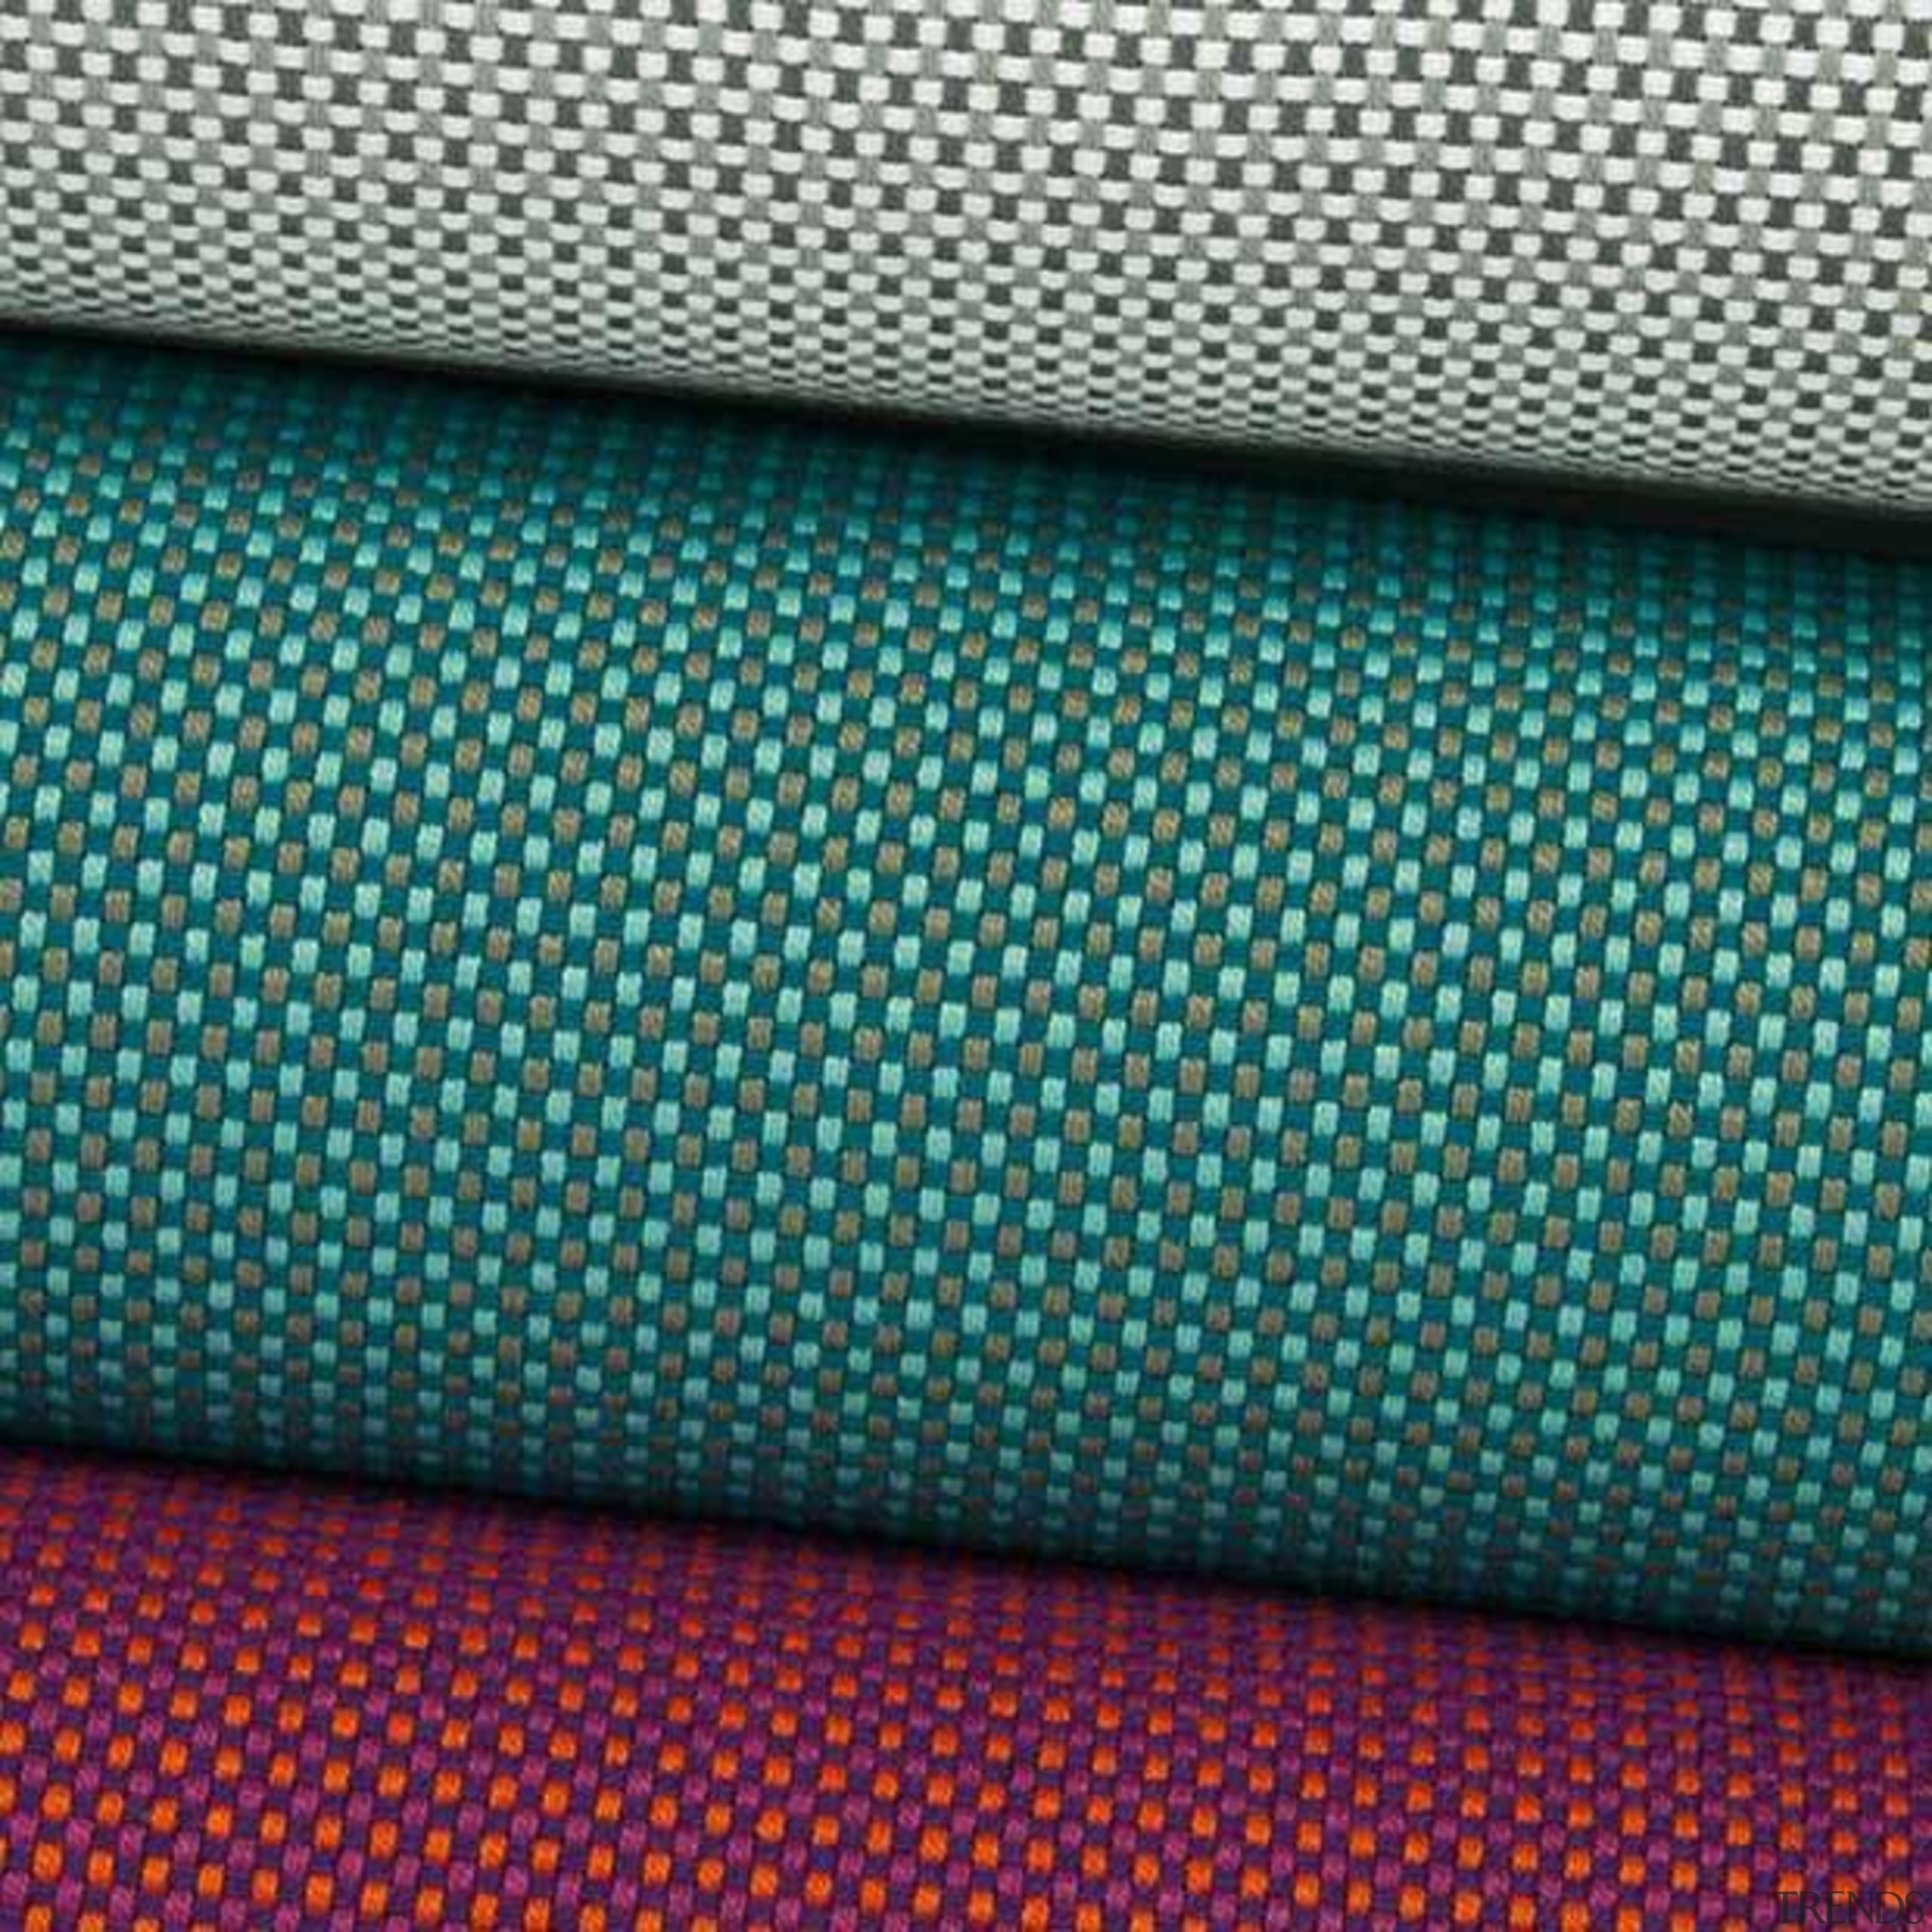 A lovely small scale patterned heavy commercial fabric. blue, electric blue, green, line, material, mesh, pattern, textile, turquoise, teal